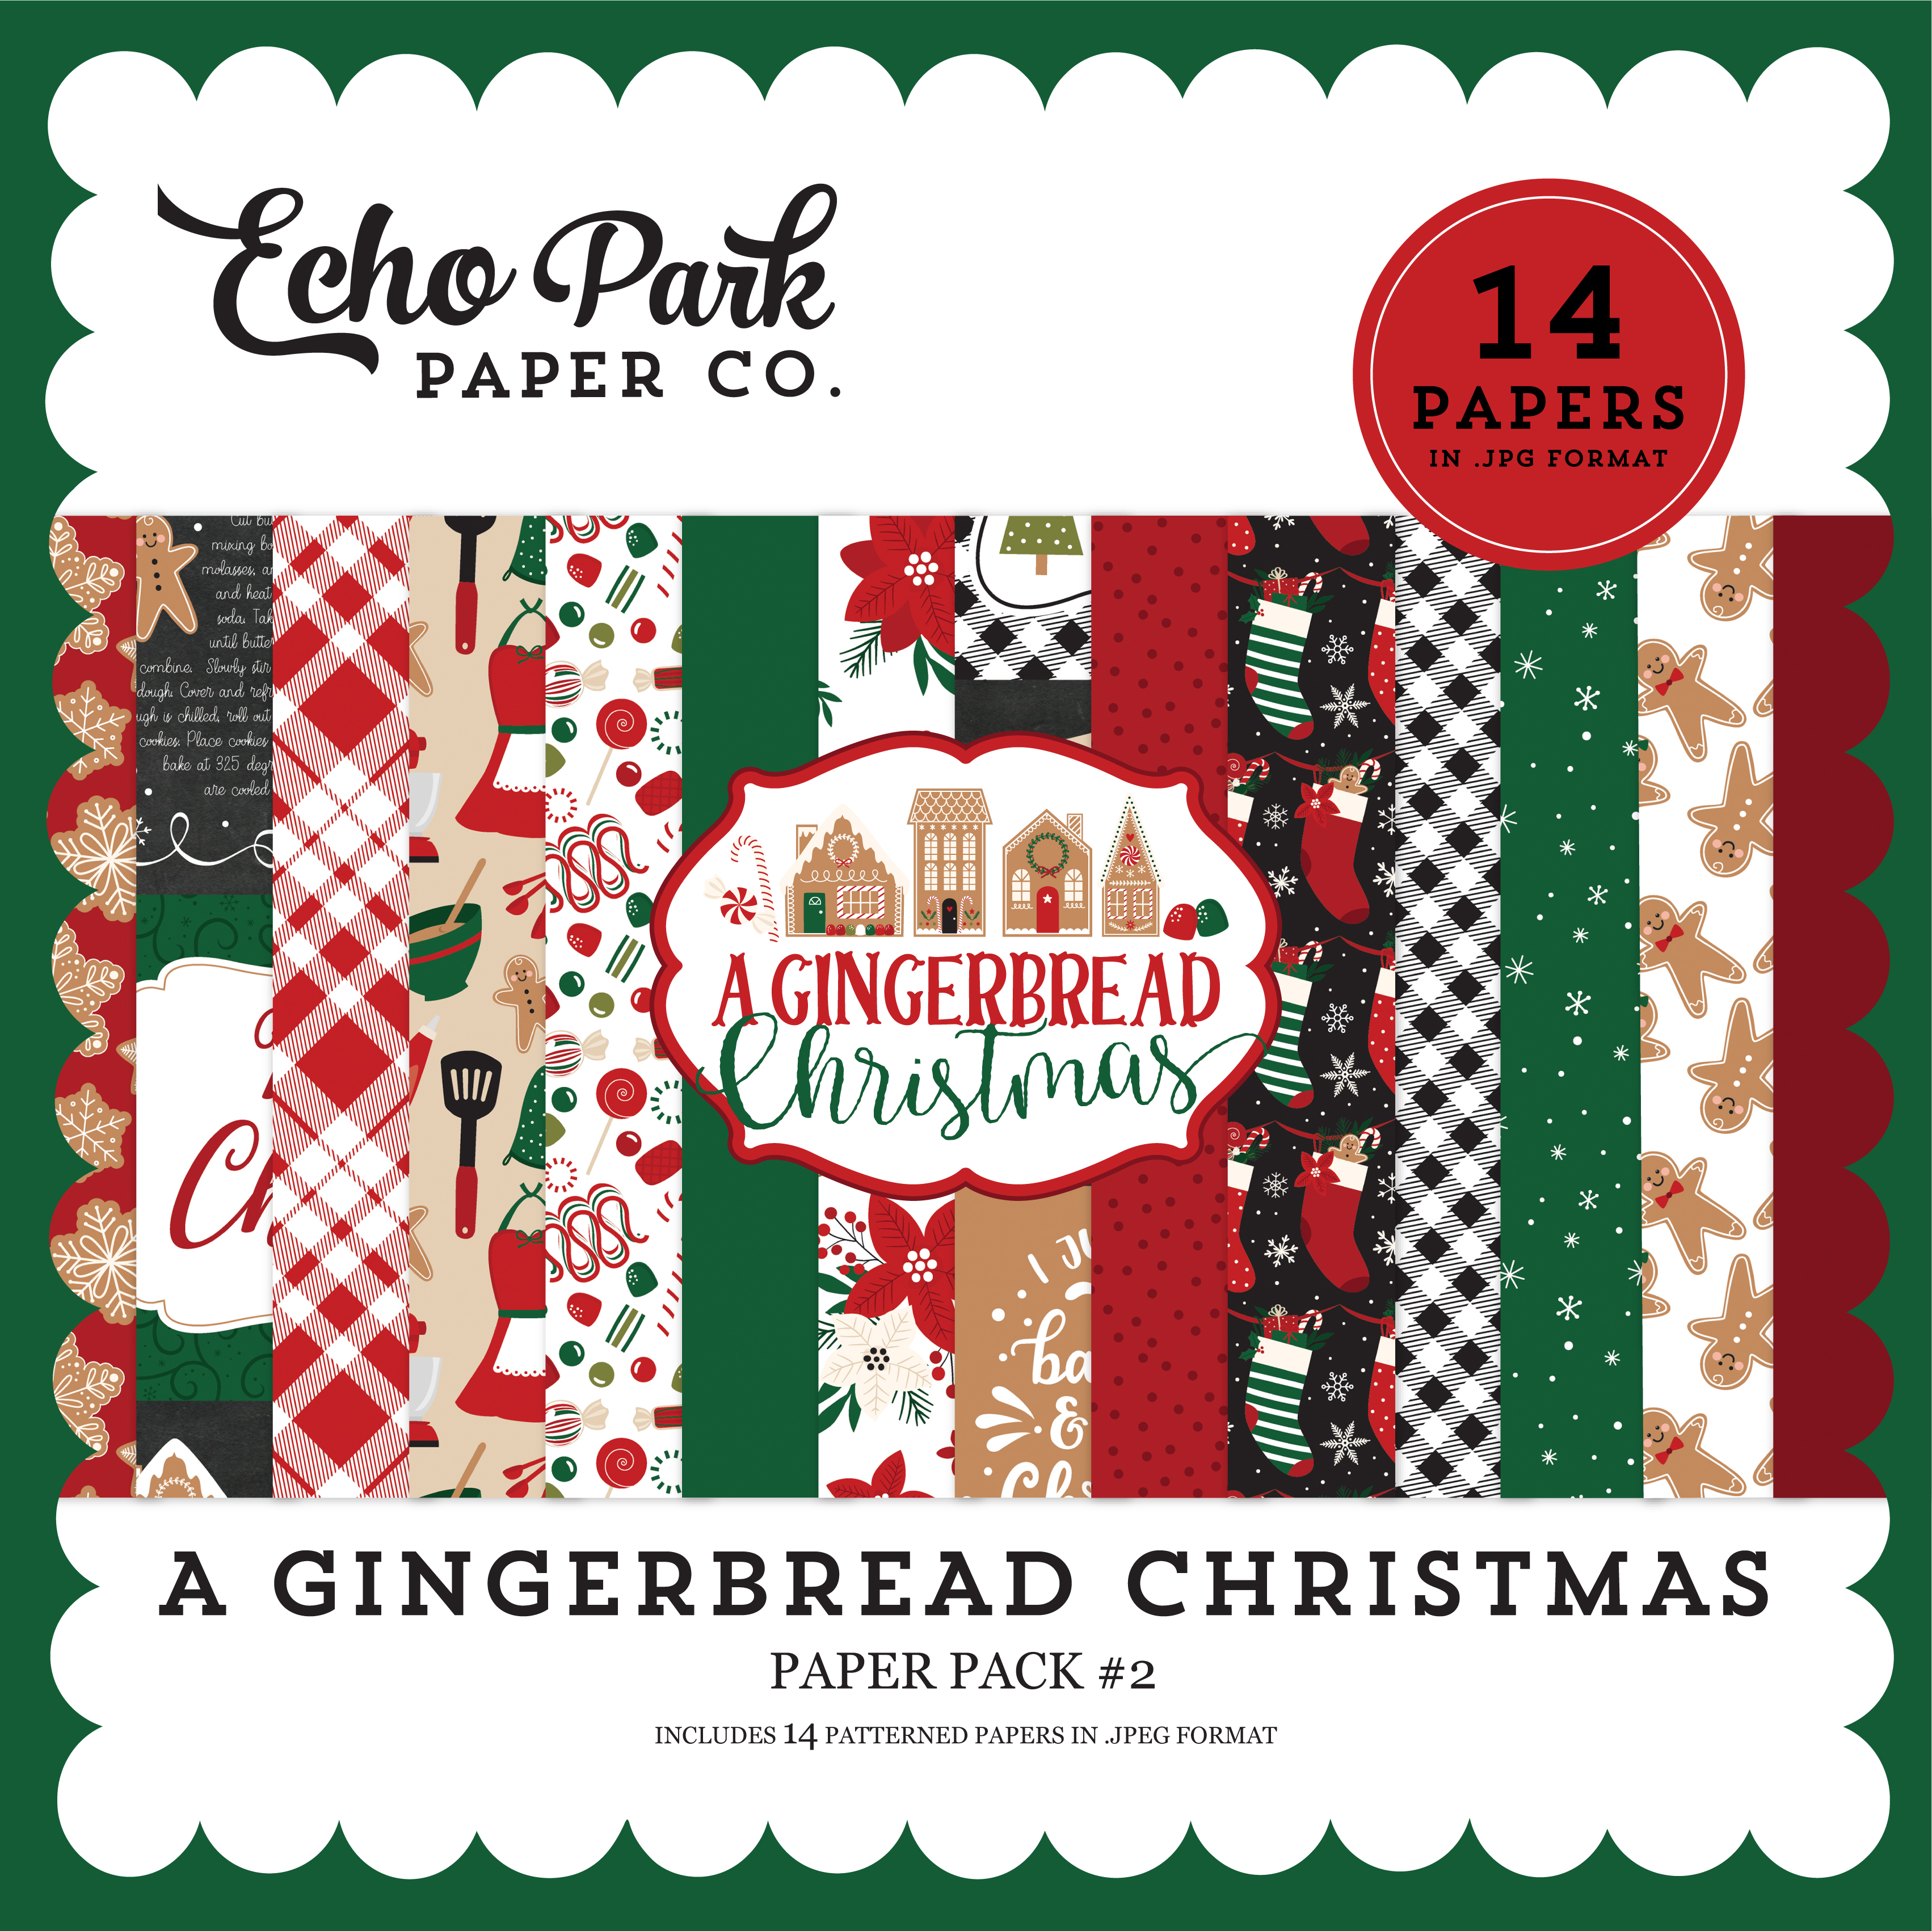 A Gingerbread Christmas Paper Pack #2